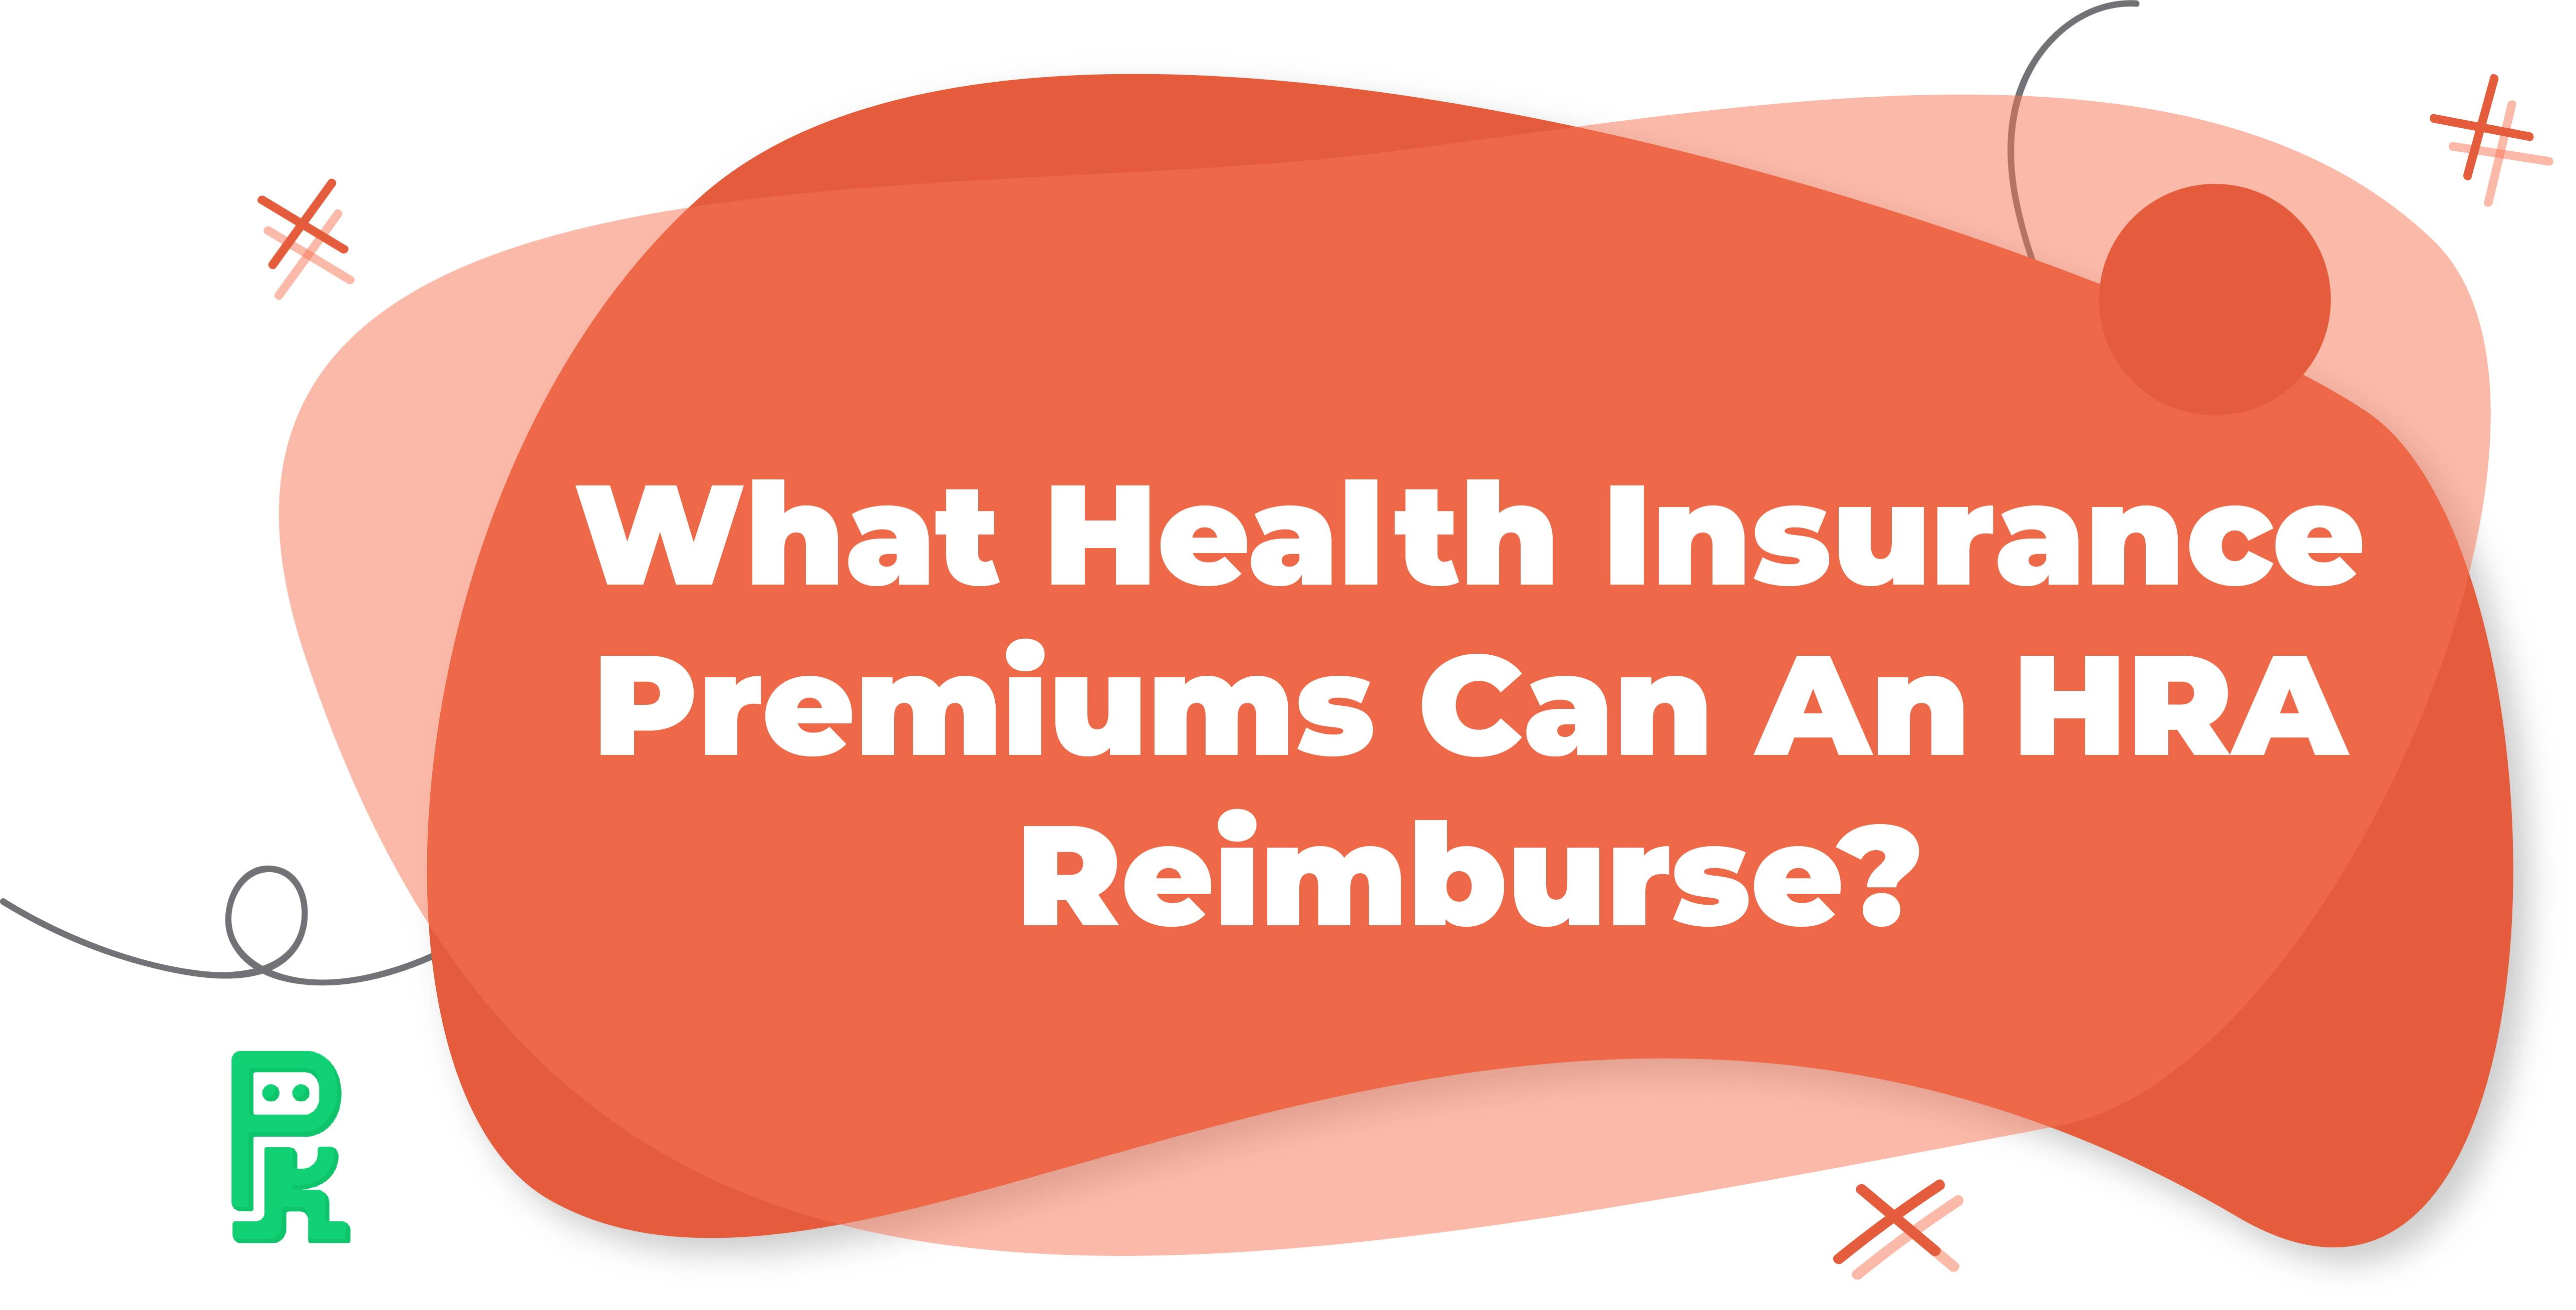 health insurance, health insurance reimbursement, insurance premium